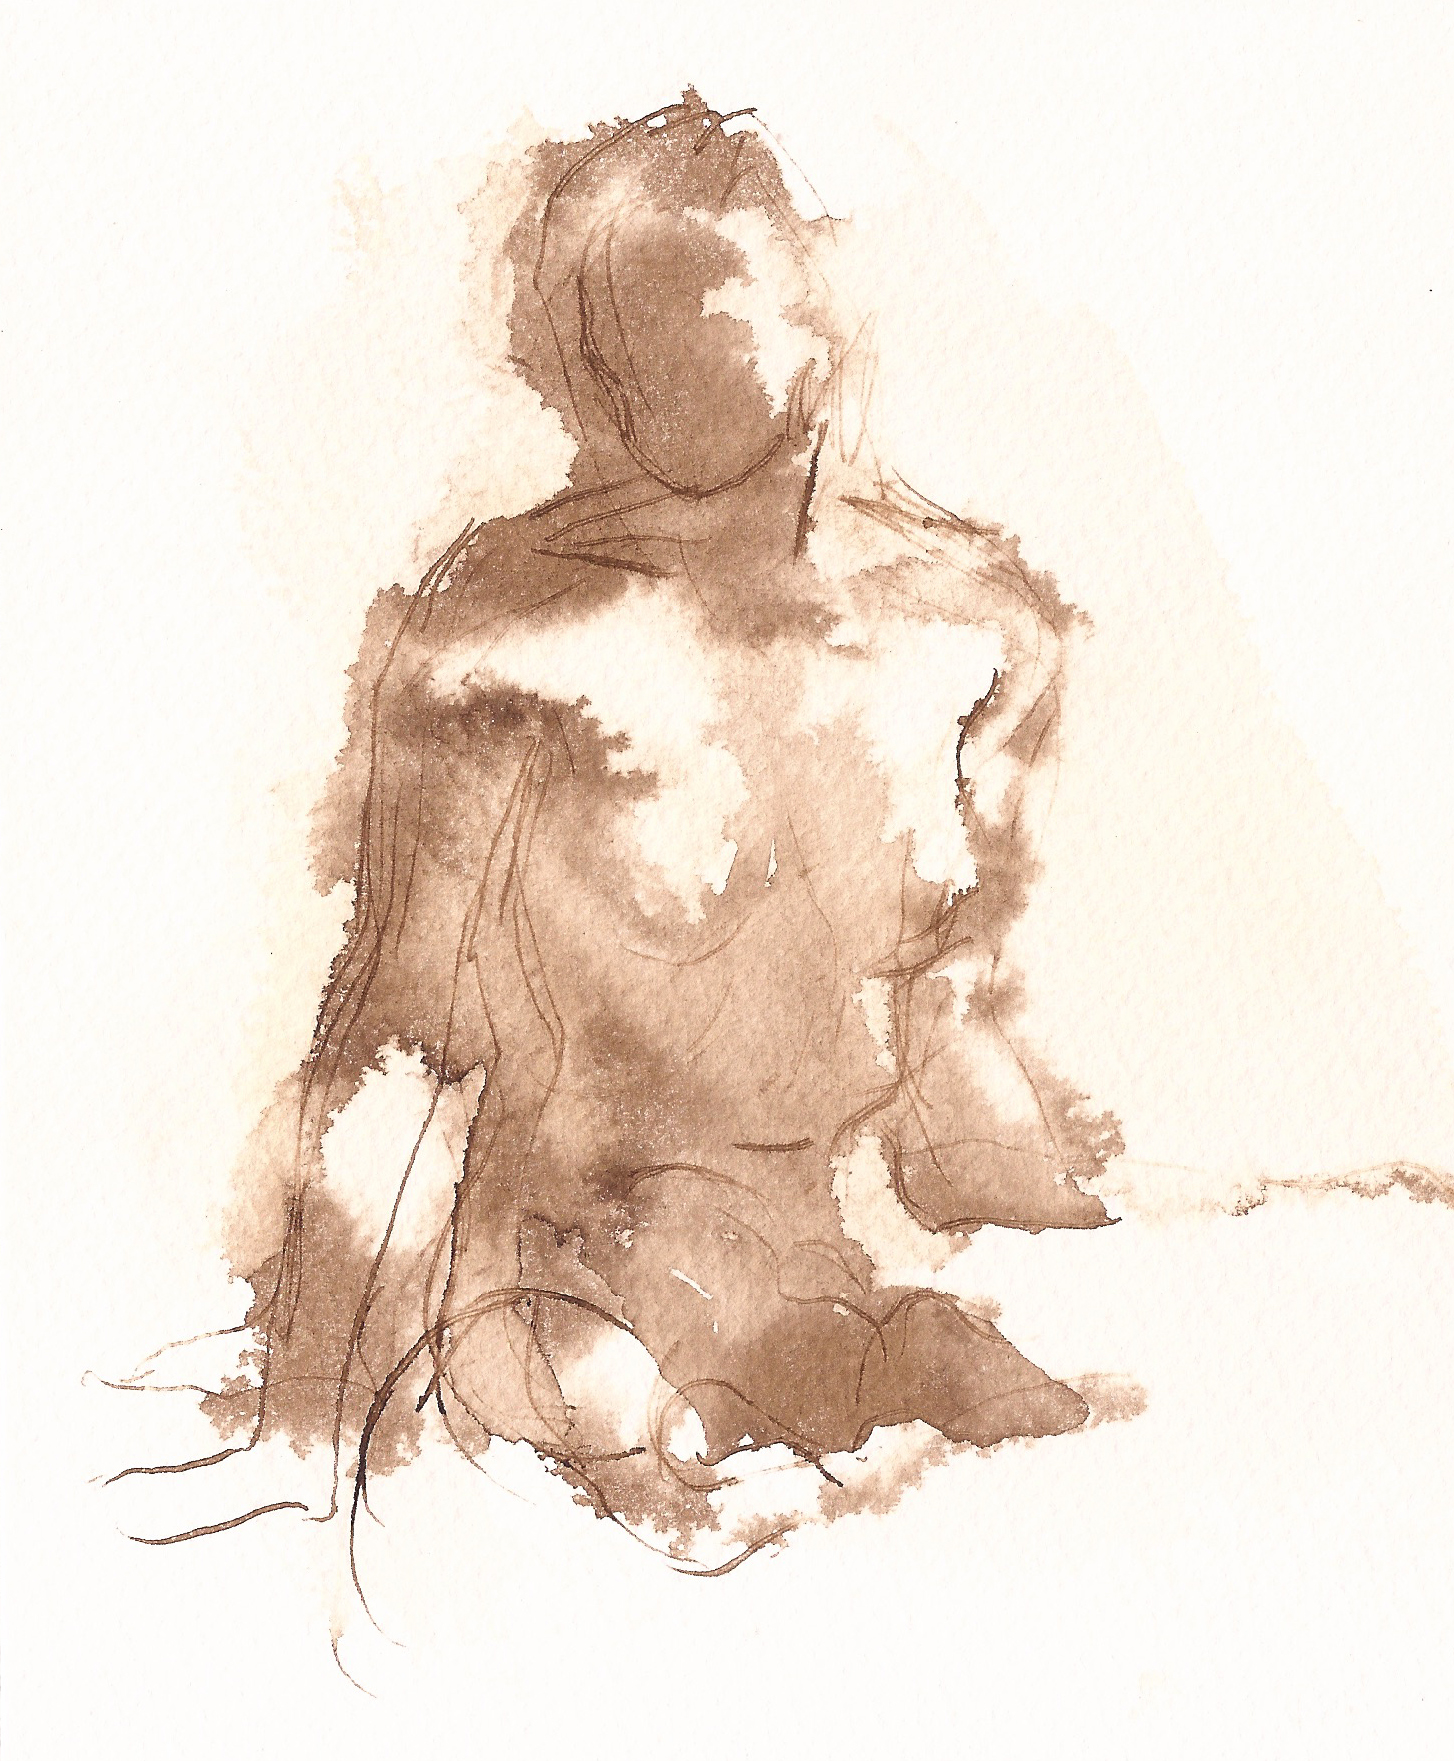 Failure in Figure Drawing? Memory and Mystery